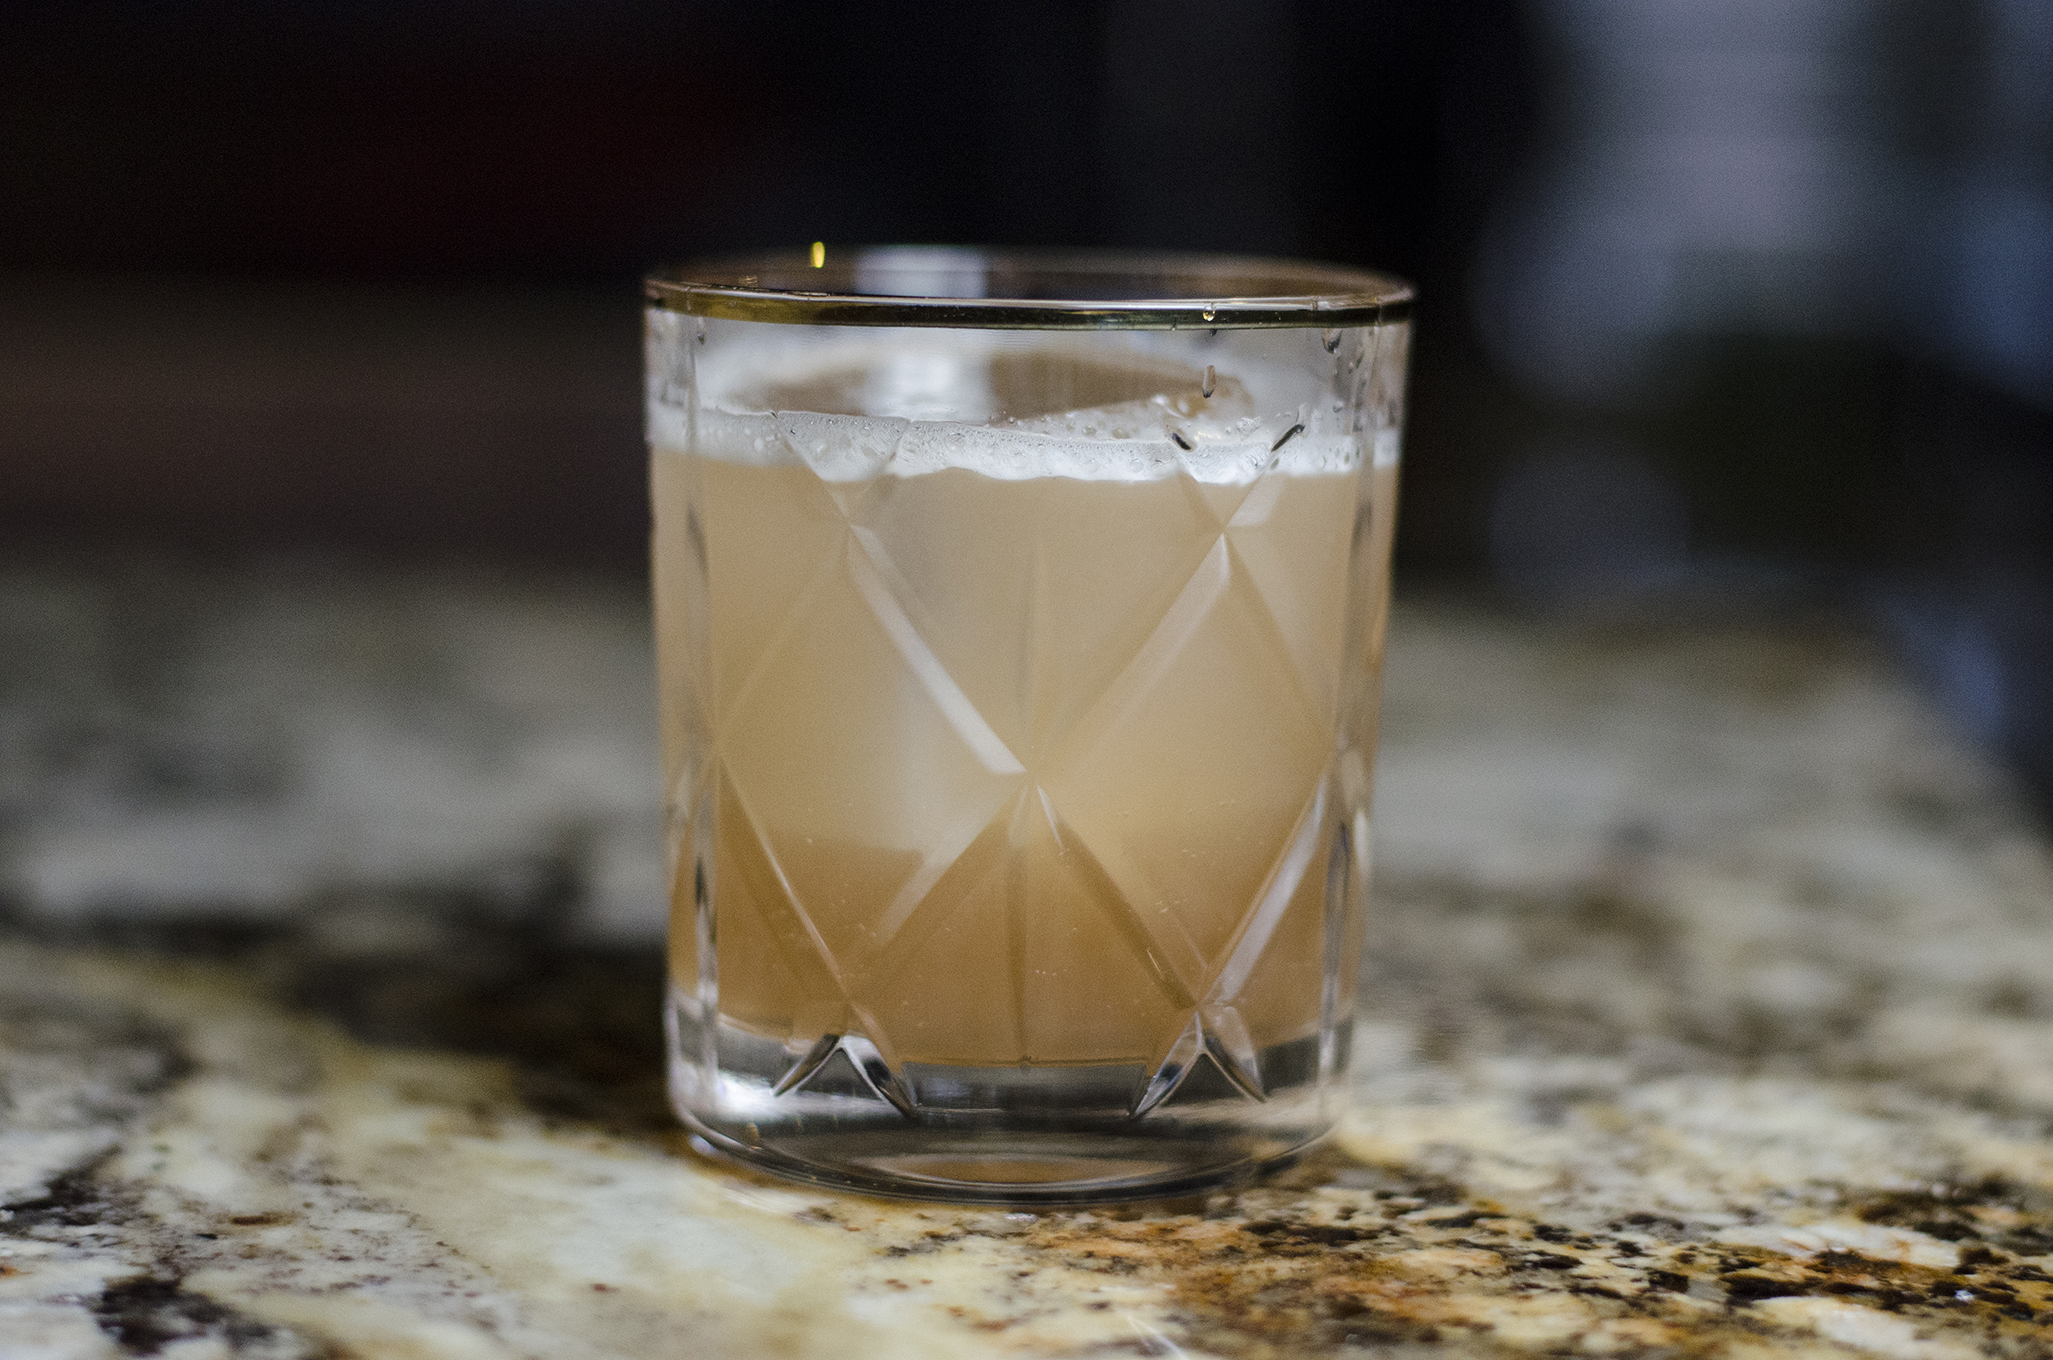 The Kentucky Bloom cocktail from the 2018 spring cocktail menu at F&B Walkerville in Windsor, Ontario.